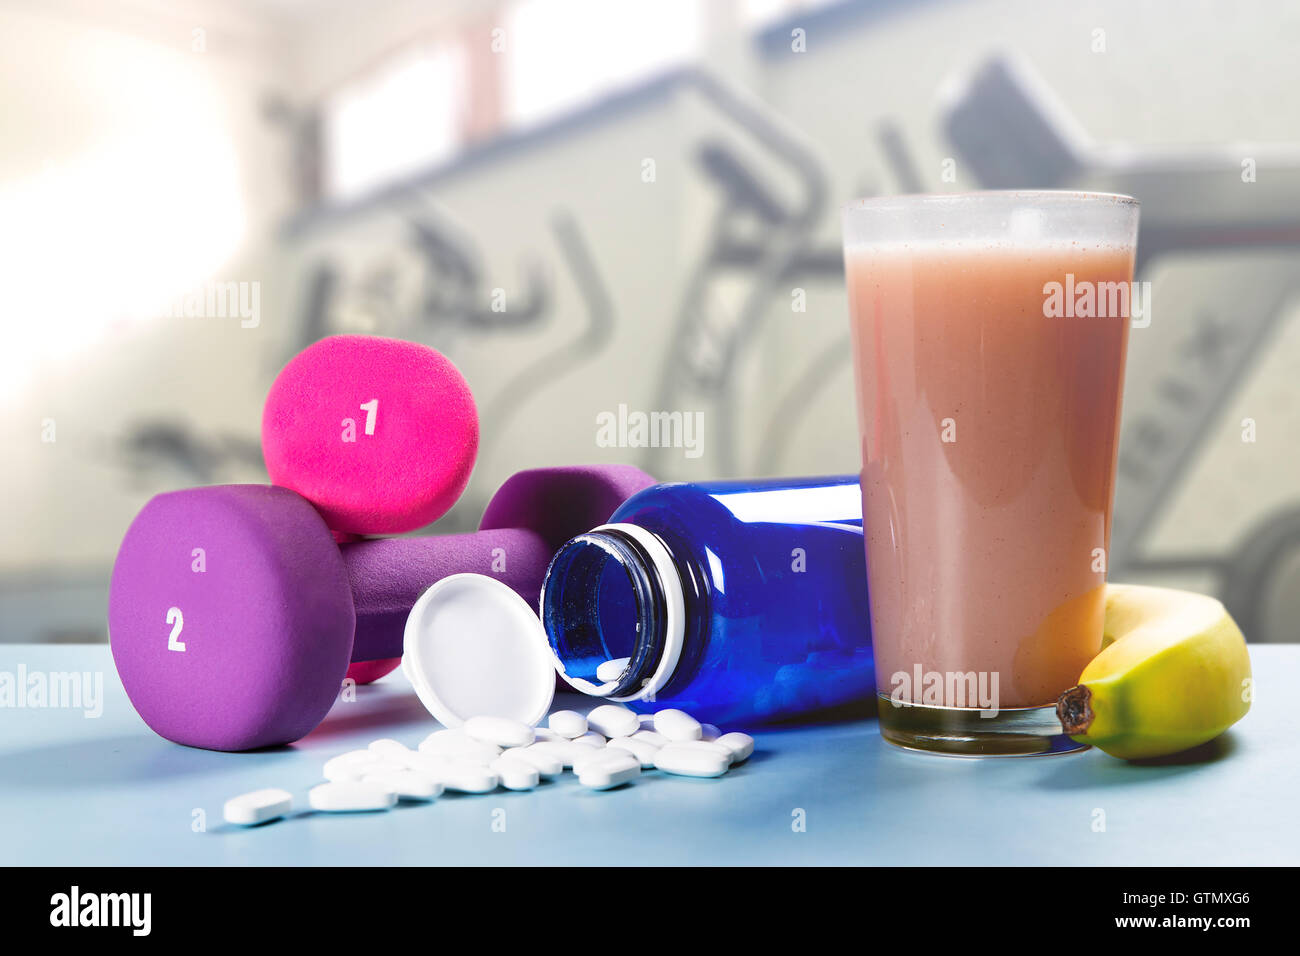 fitness supplements power motivation healthy active